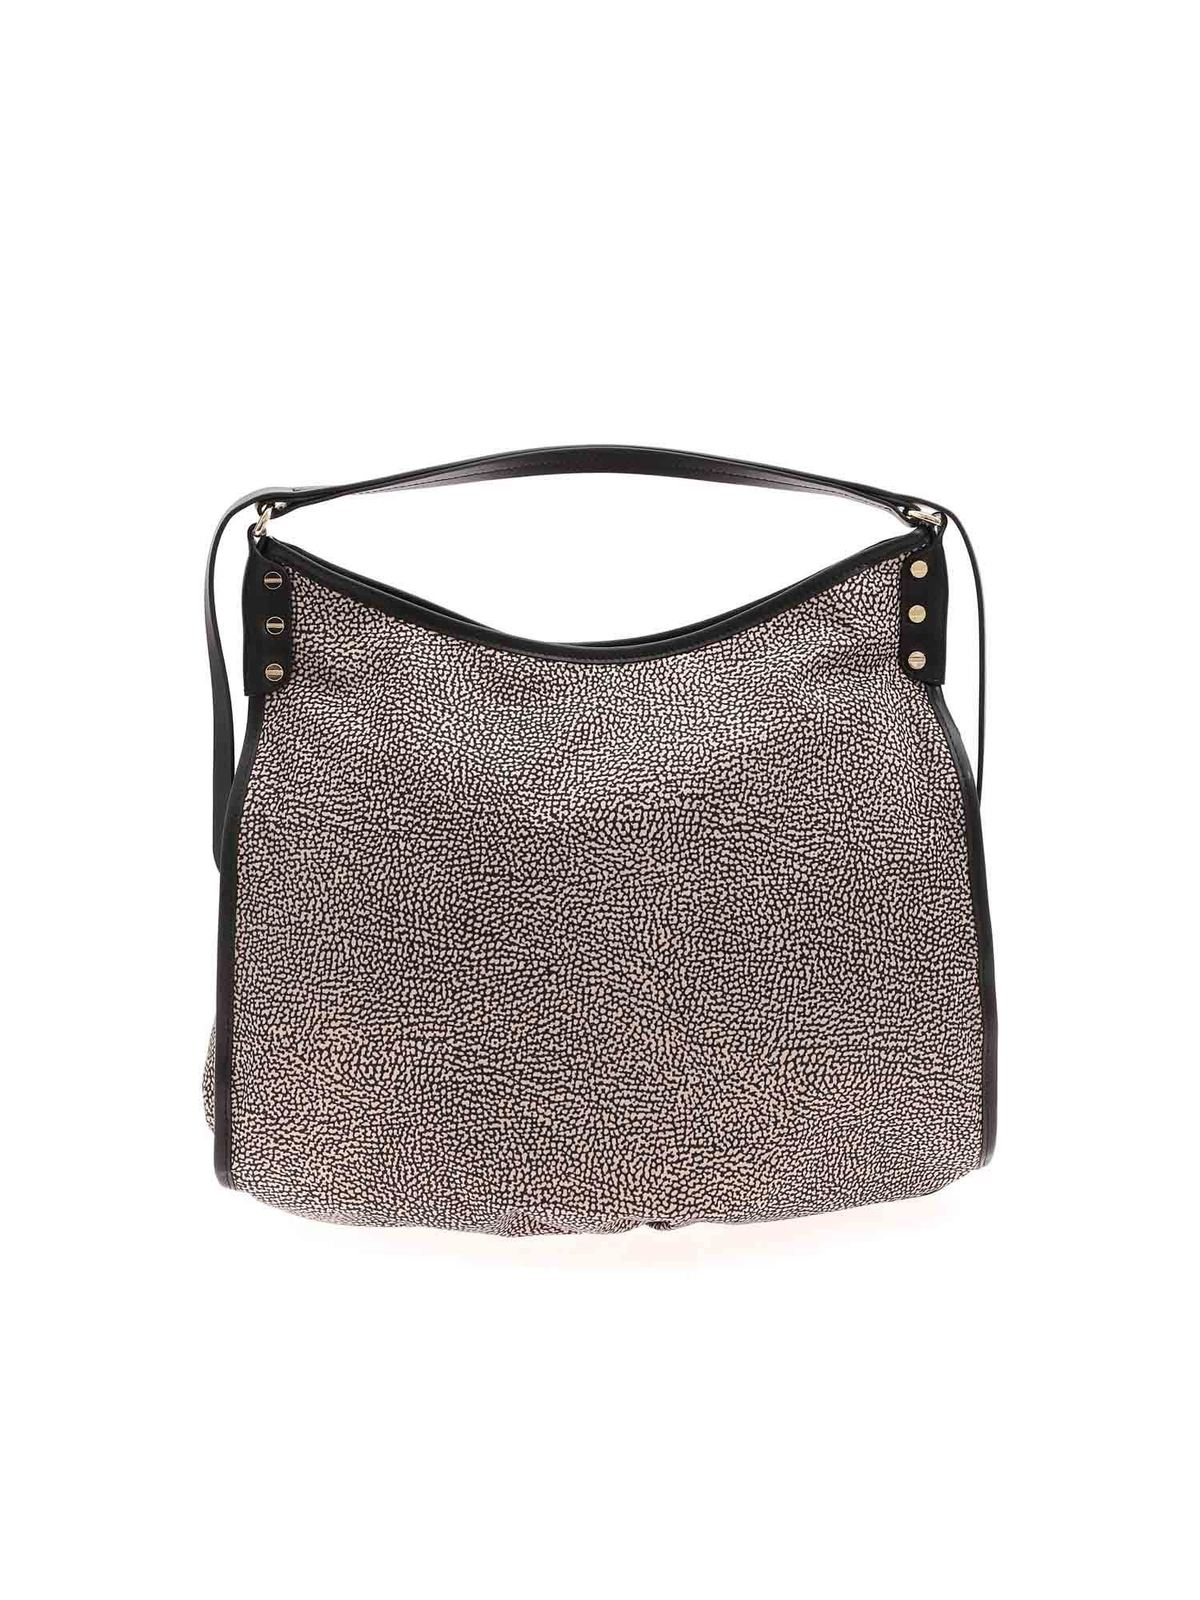 Borbonese OP PRINT SHOULDER BAG IN BLACK AND BEIGE